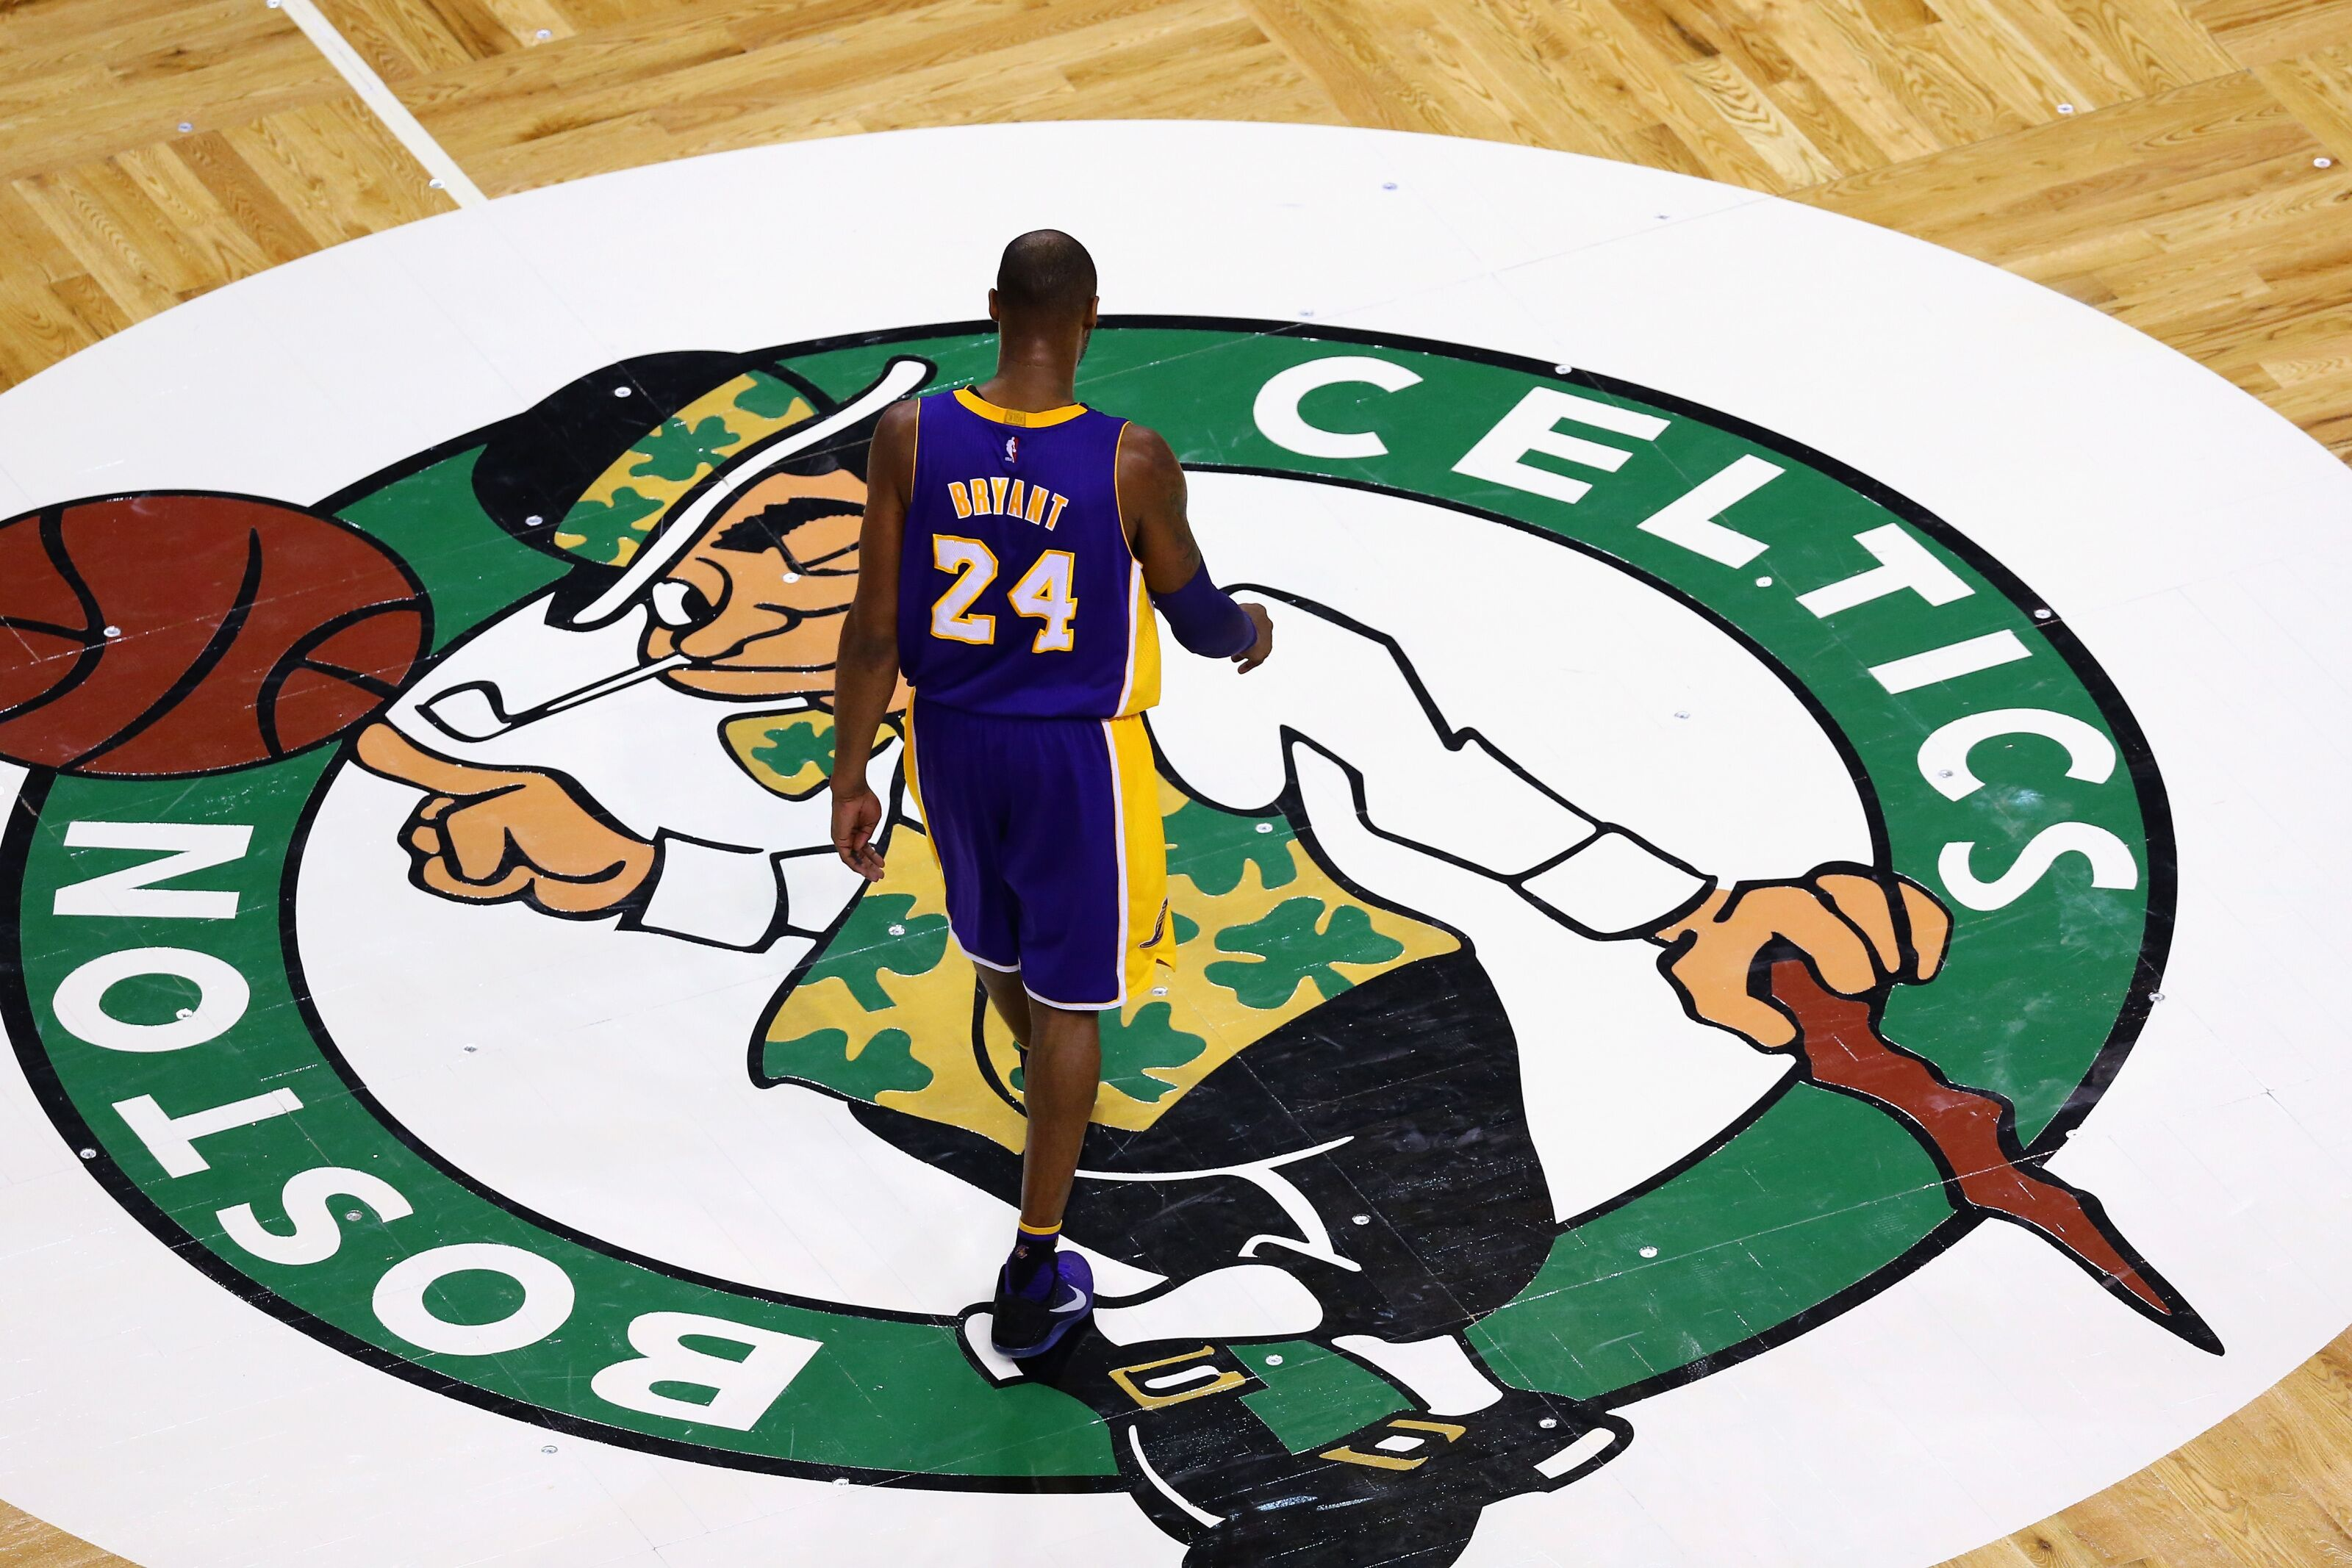 Forever a hero, even to the enemy: A Celtics tribute to the career and life of Kobe Bryant